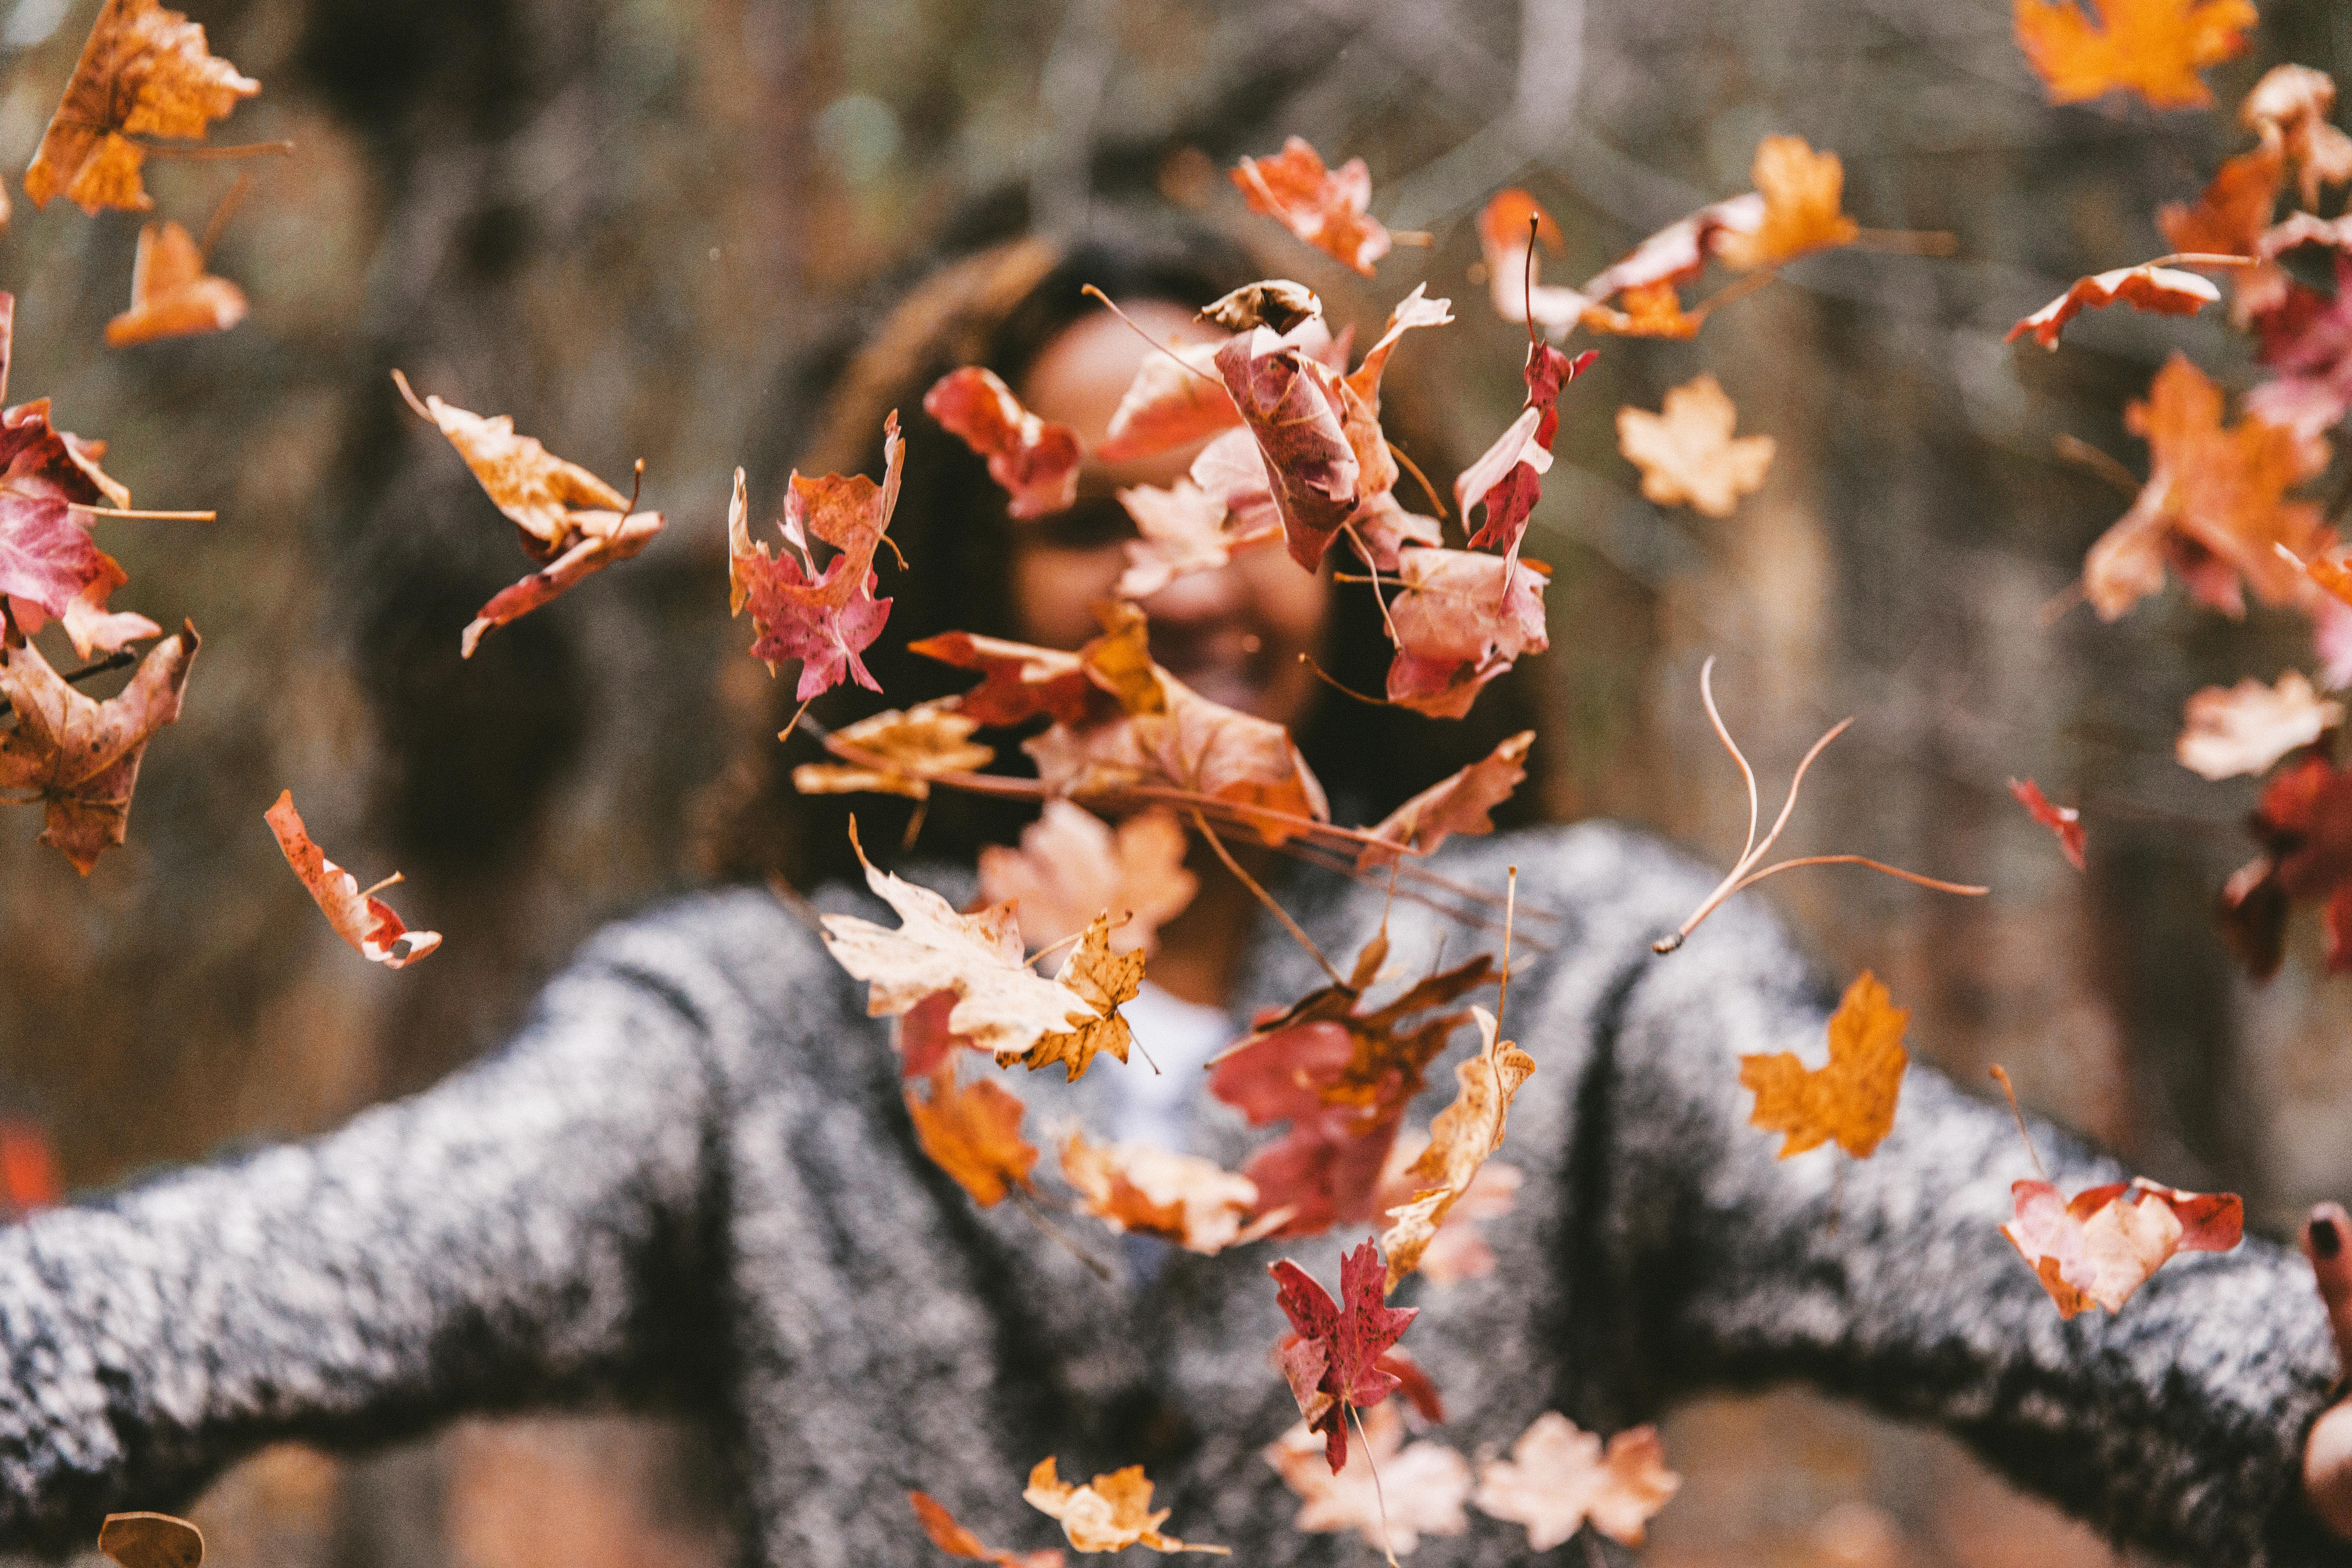 What's New for the Fall?